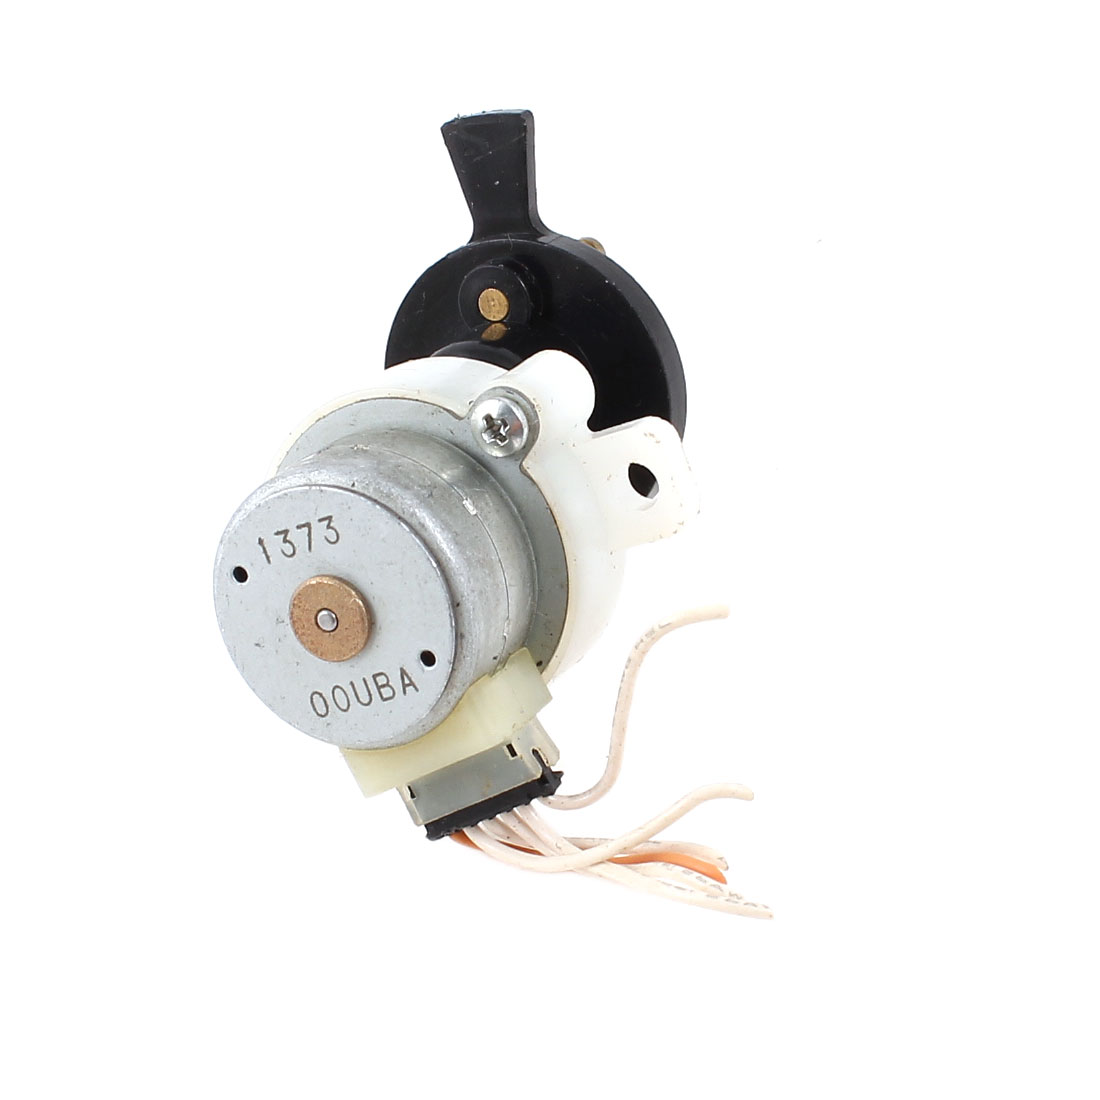 3mmx10mm Shaft 4500RPM Electric Reduction Stepper Motor 1:12 Ratio